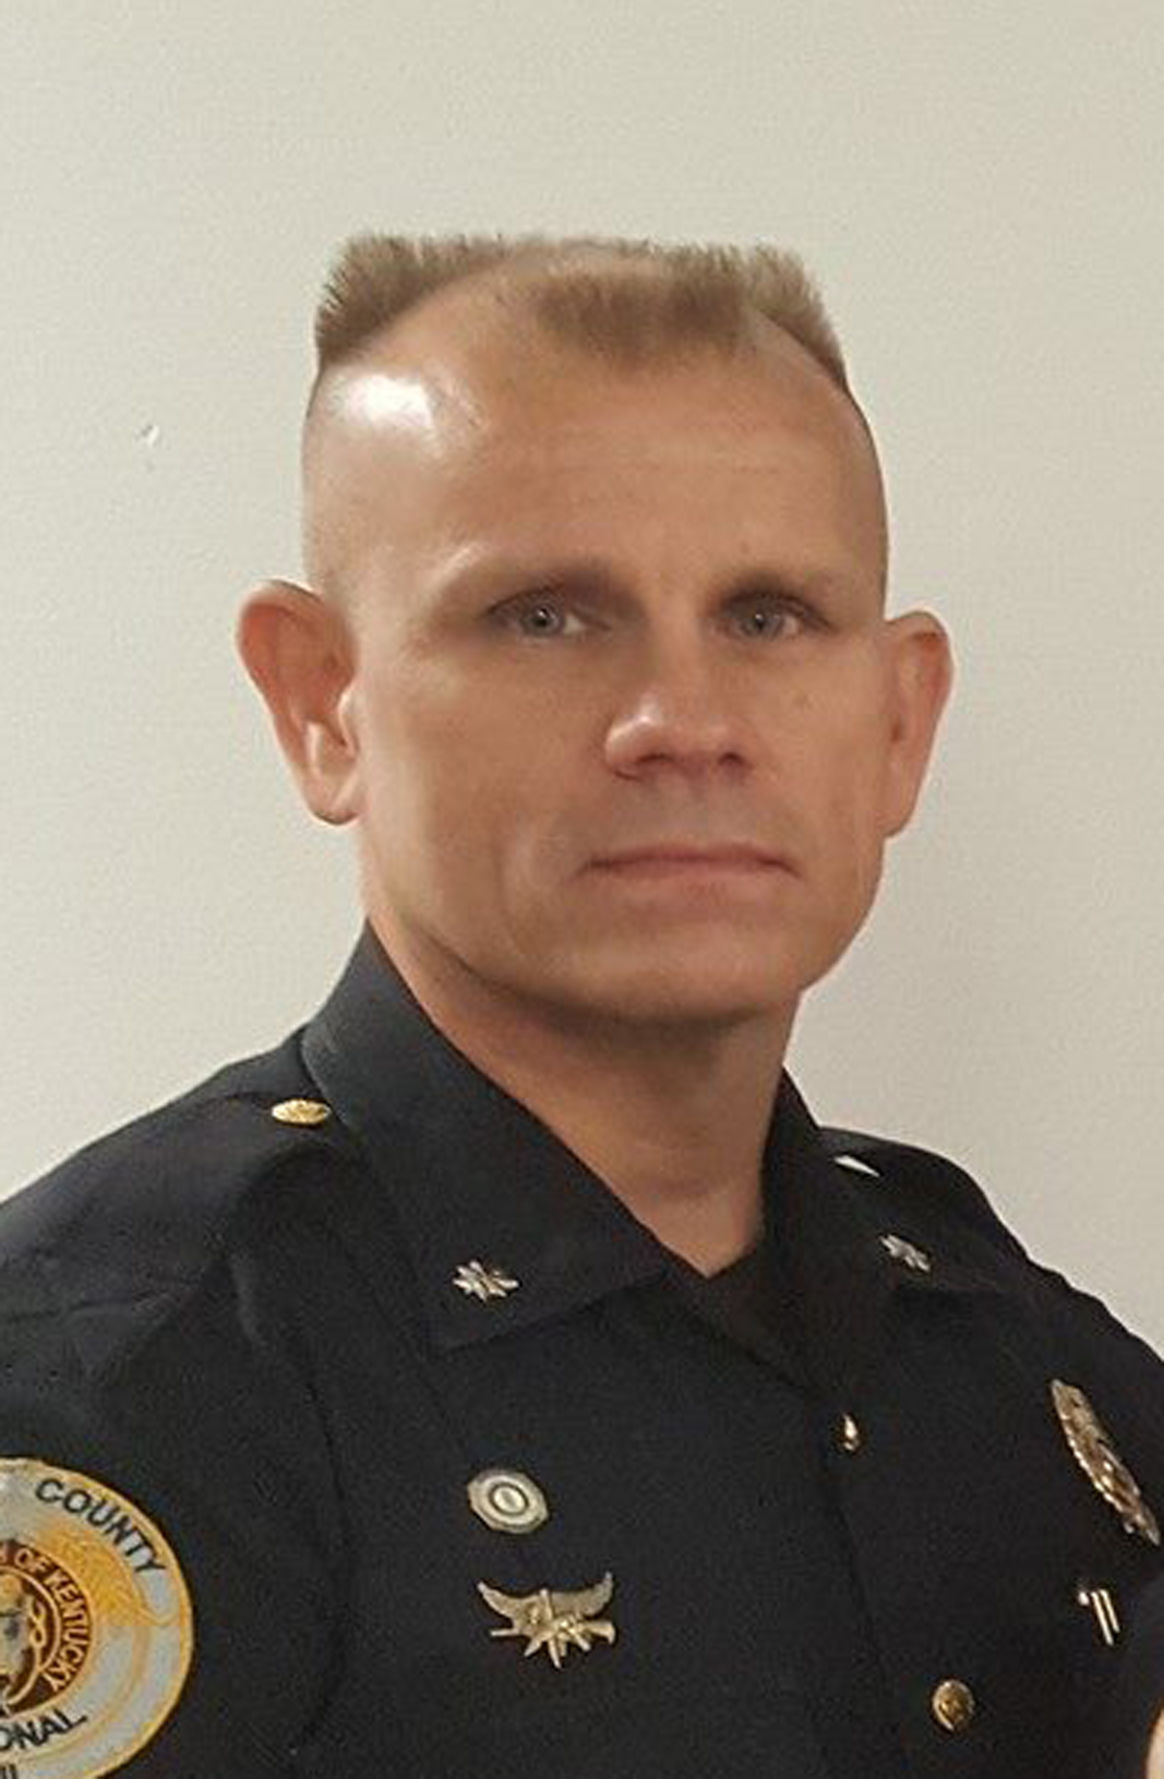 Chief deputy jailer placed on paid leave after sexual harassment allegation